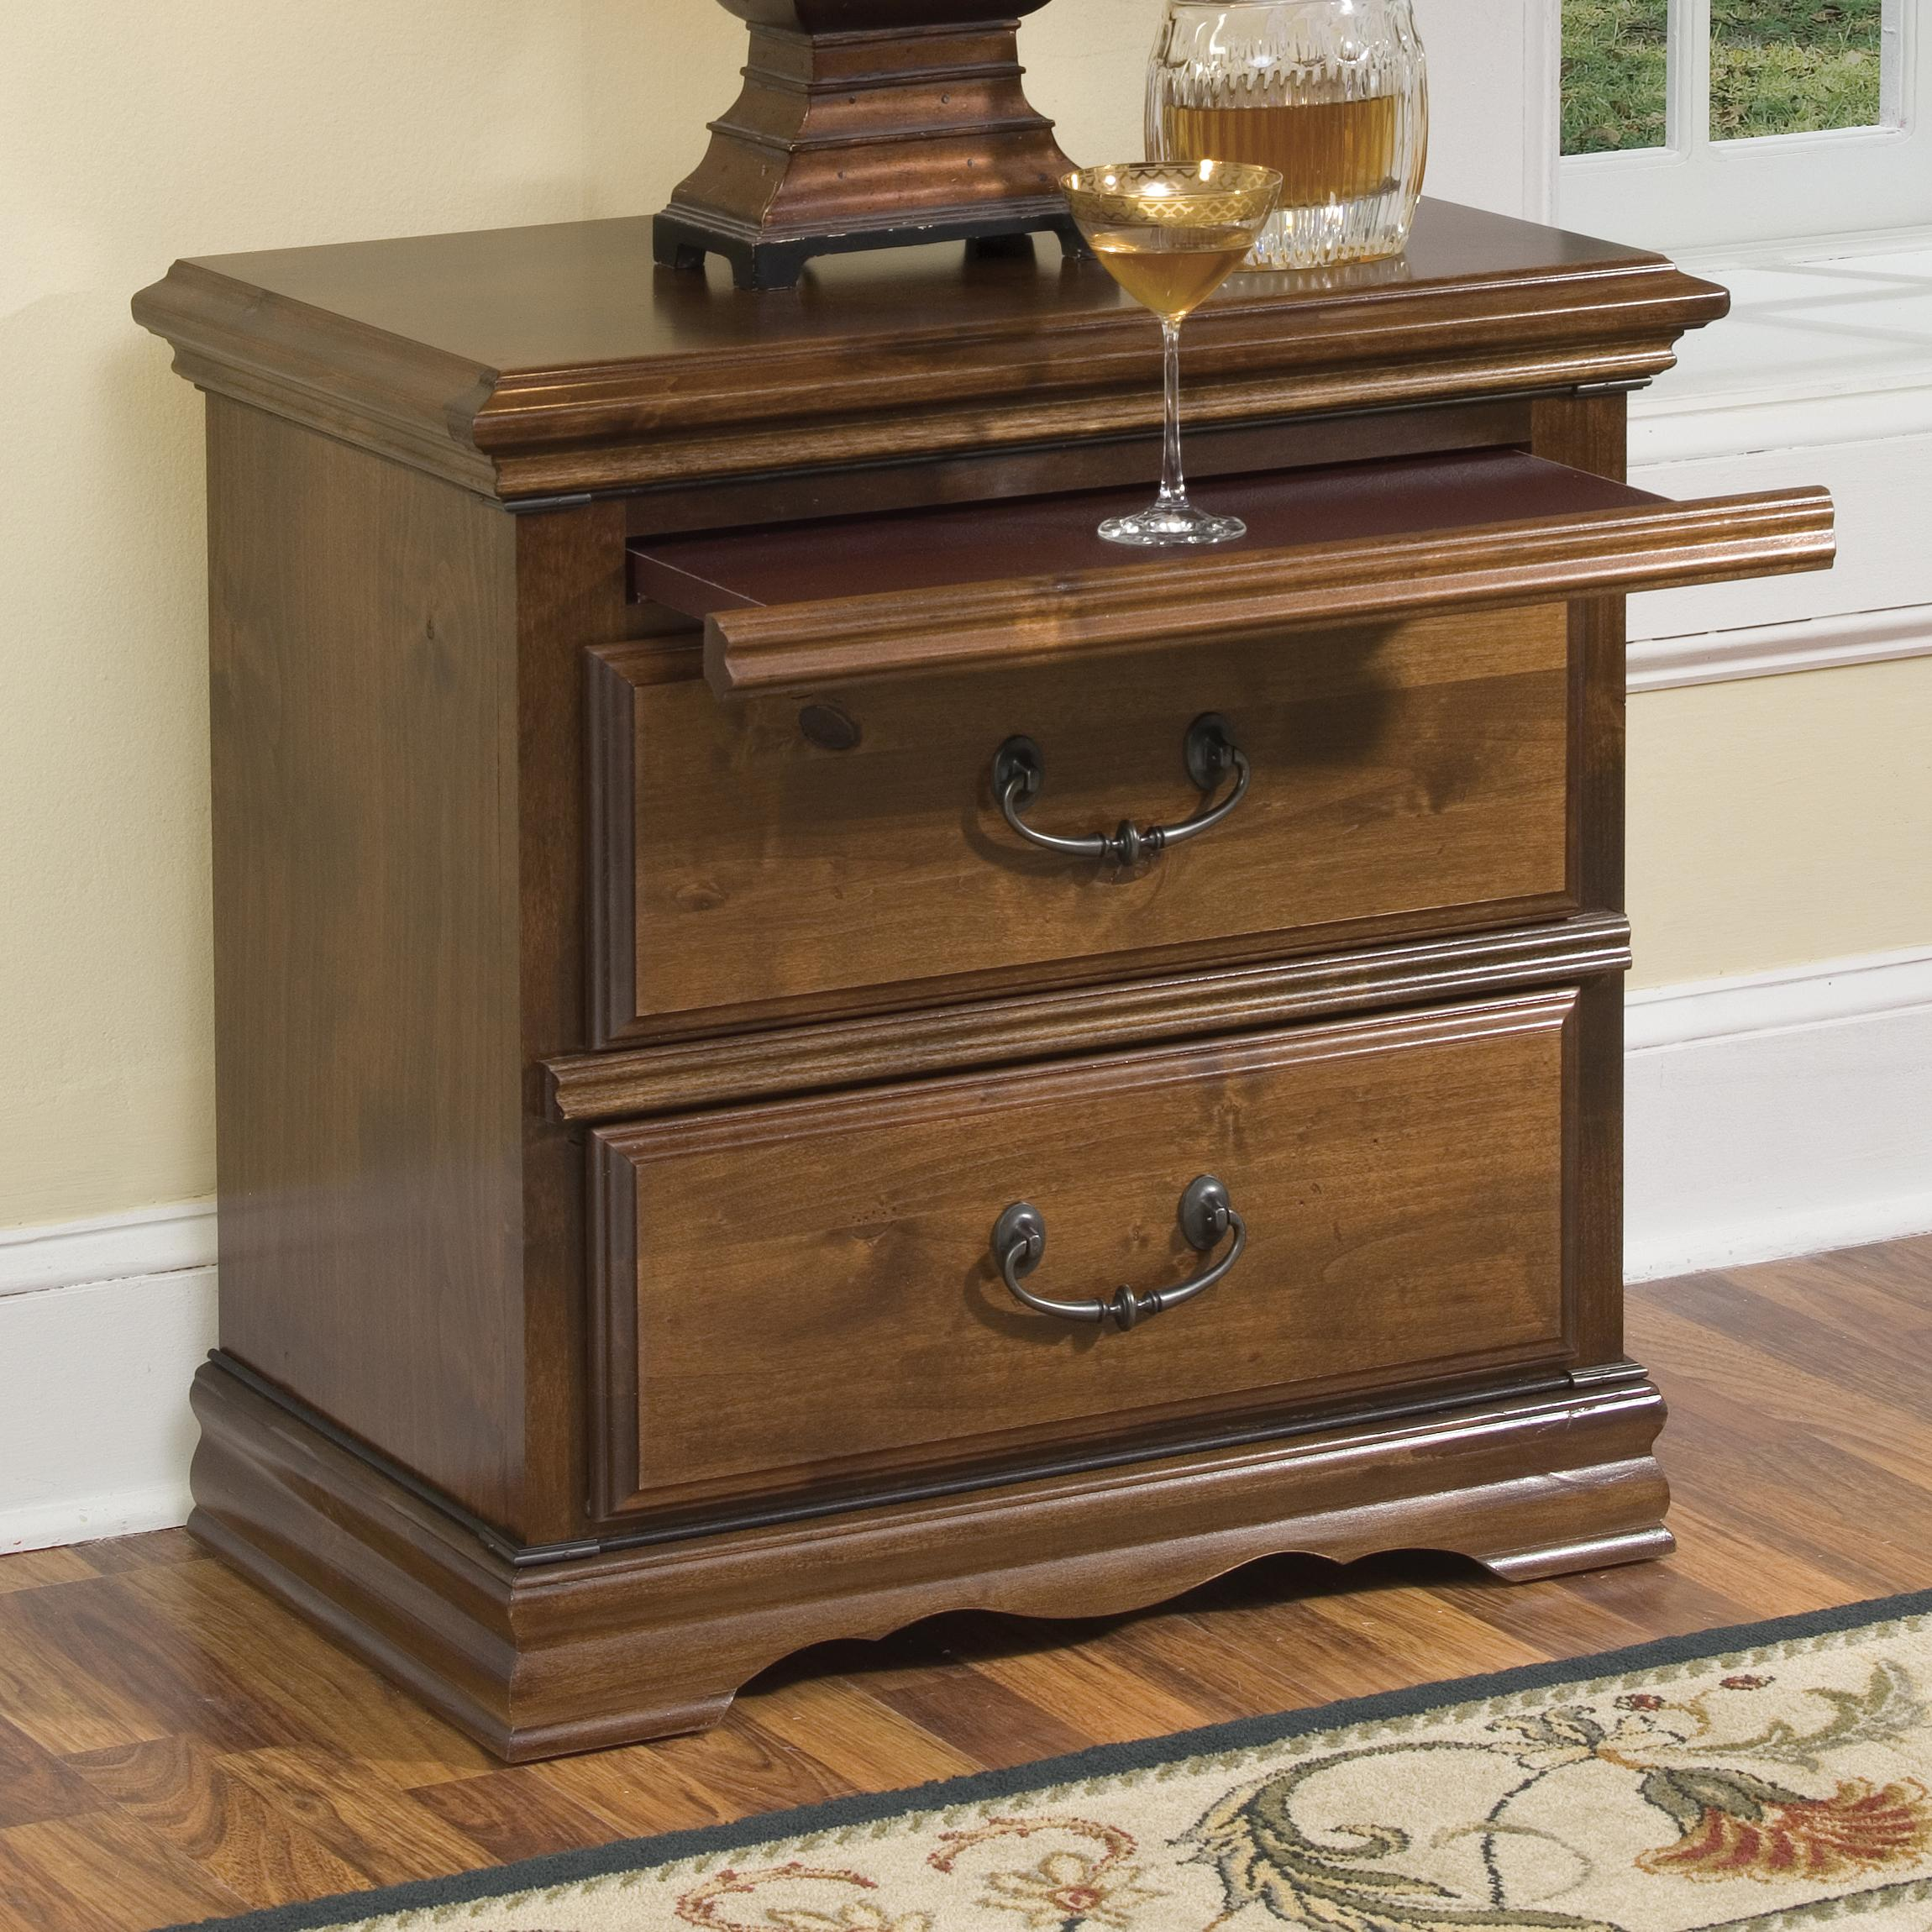 Furniture Traditions Alder Hill 2-Drawer Night Stand - Item Number: A2125